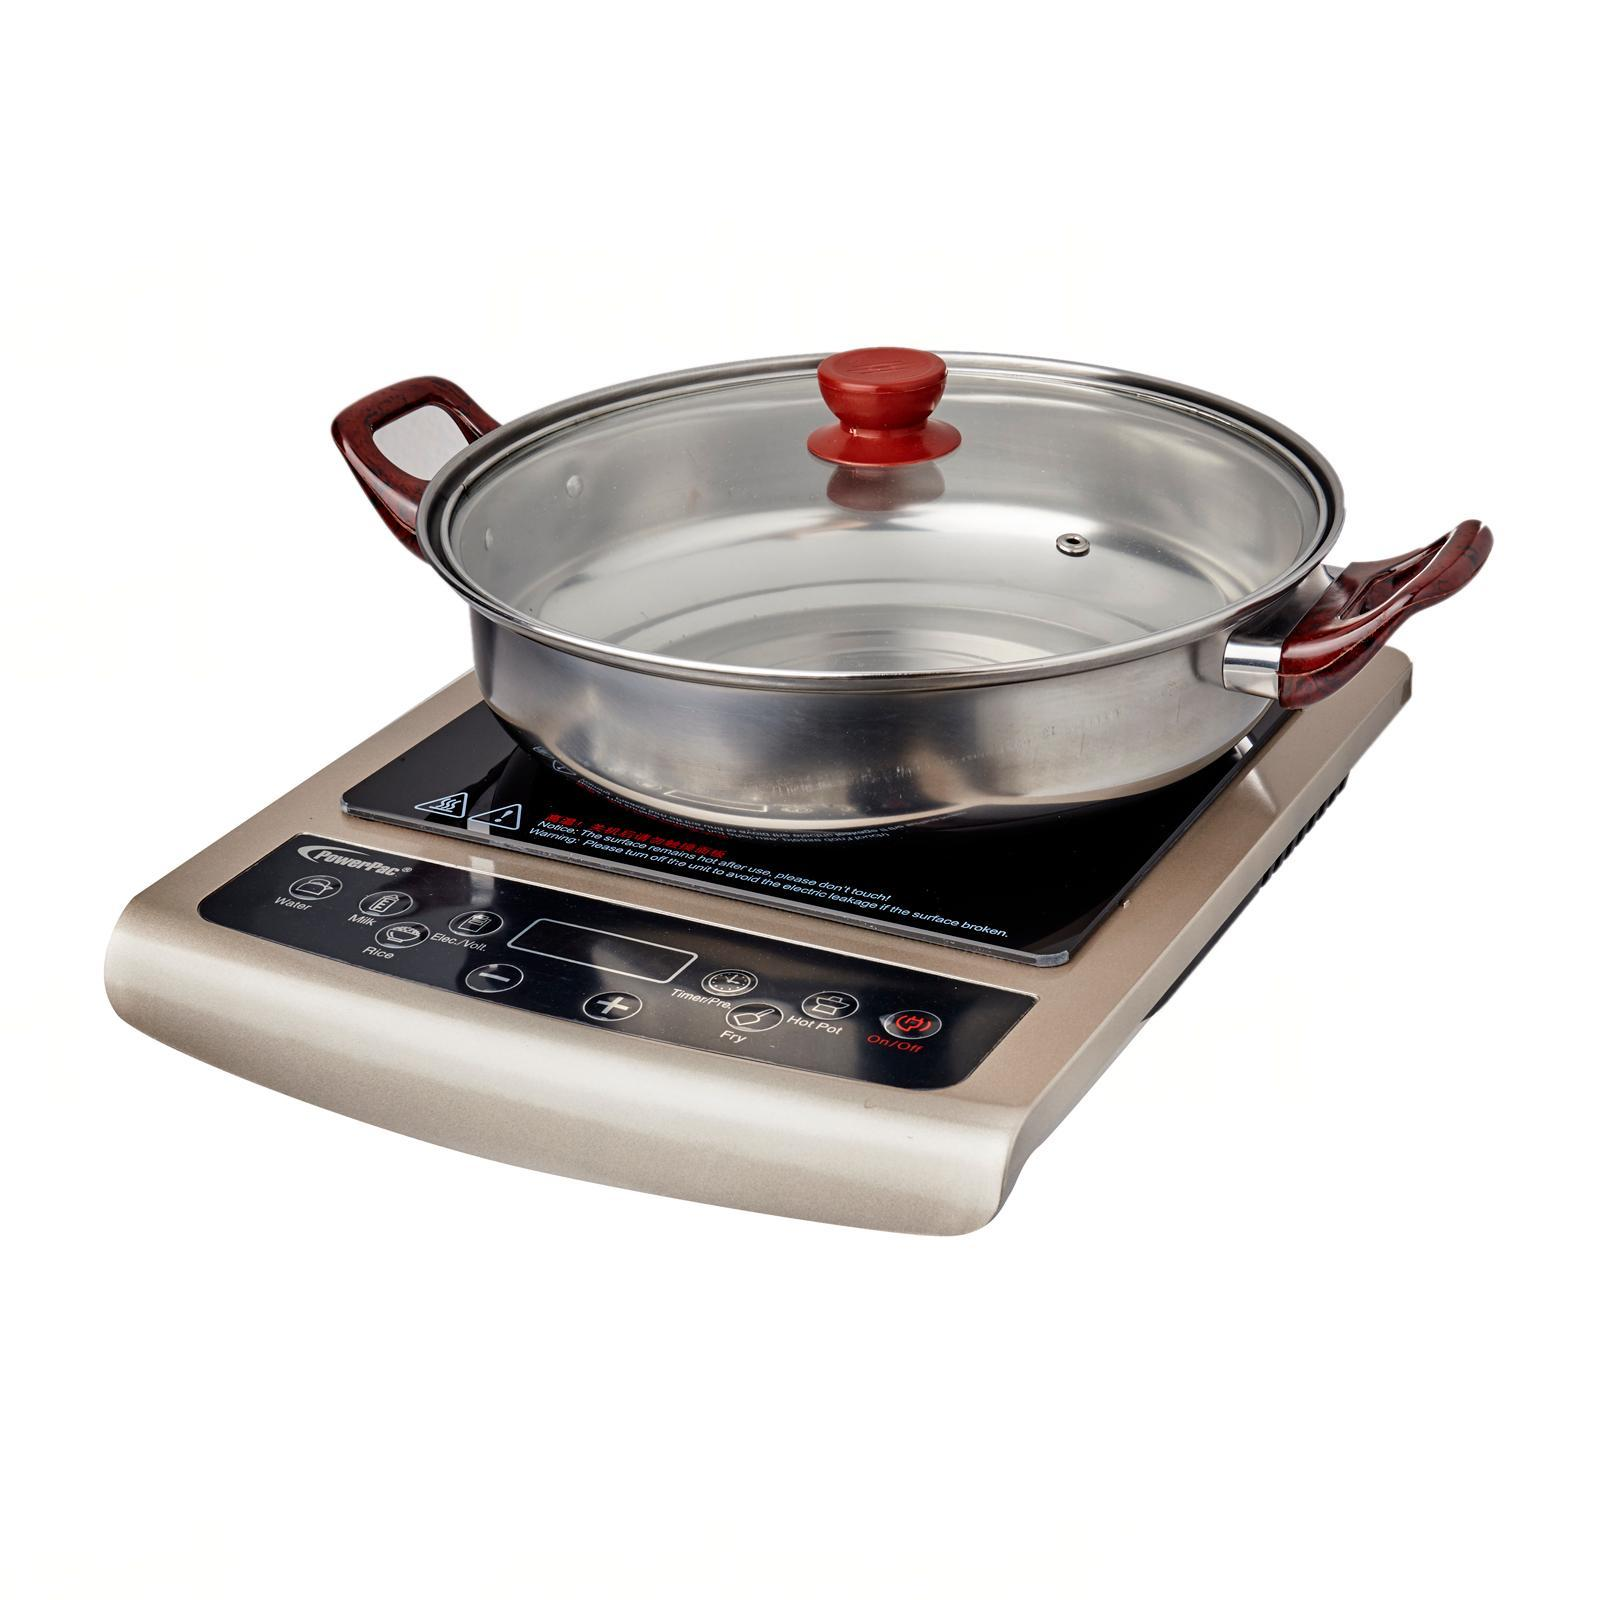 PowerPac Induction Cooker W/ Ss Pot / Overheat Protection (Ppic848)